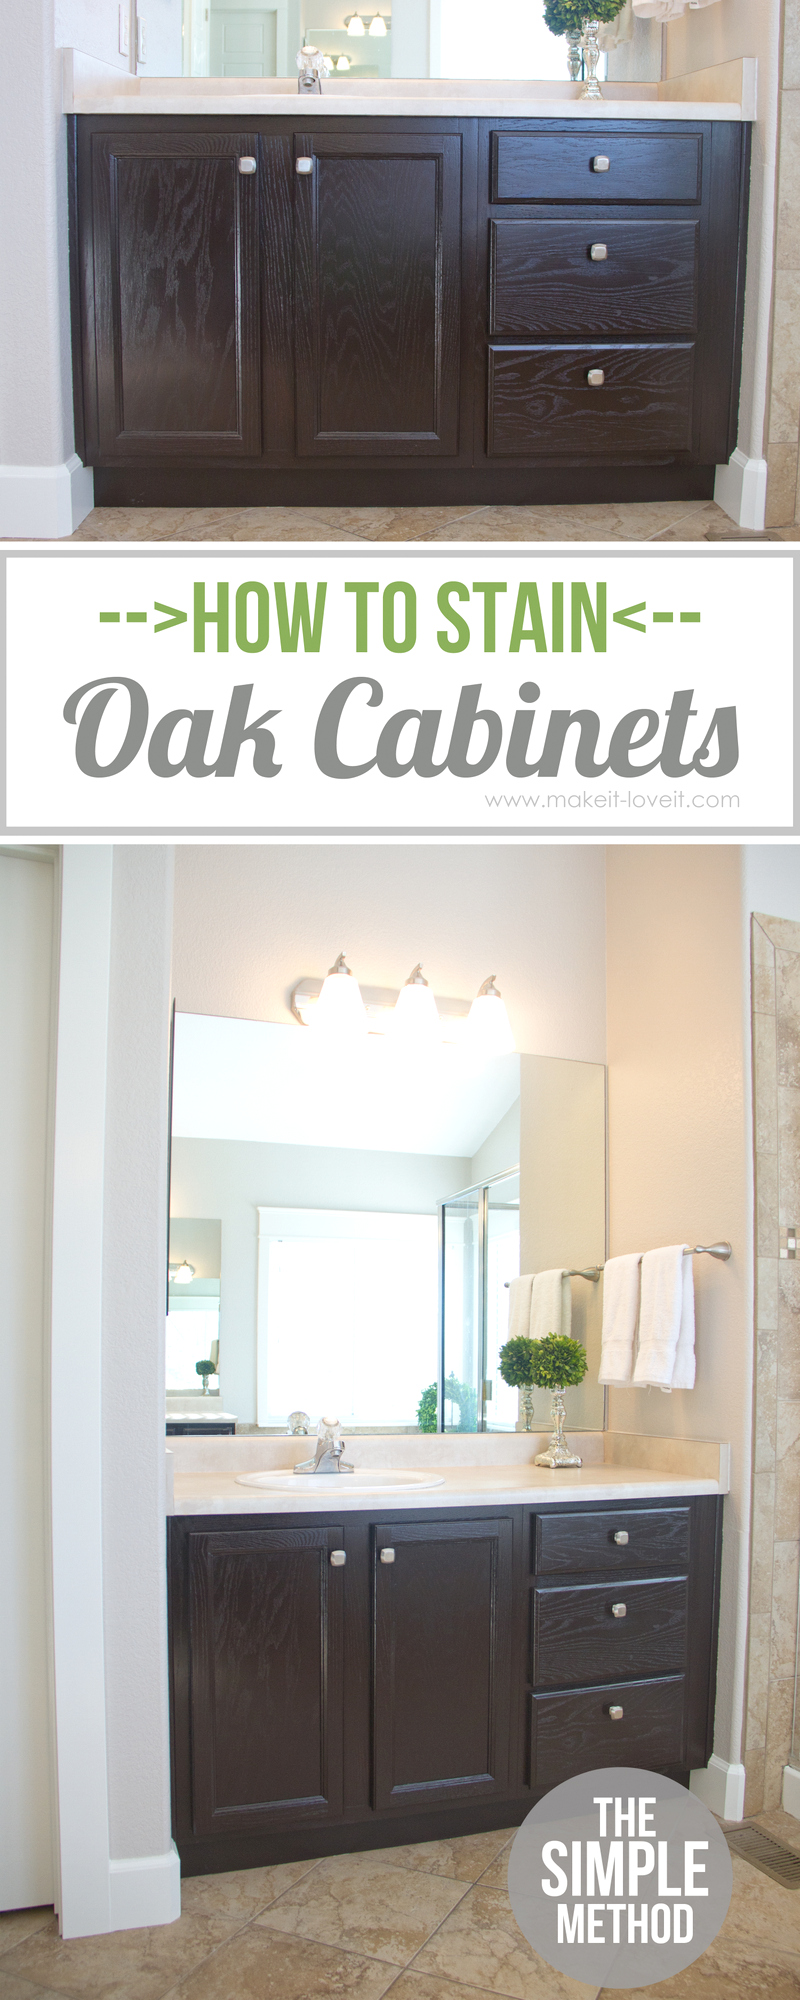 13 home improvement ideas that you will love make it and for Can you paint kitchen cabinets without sanding